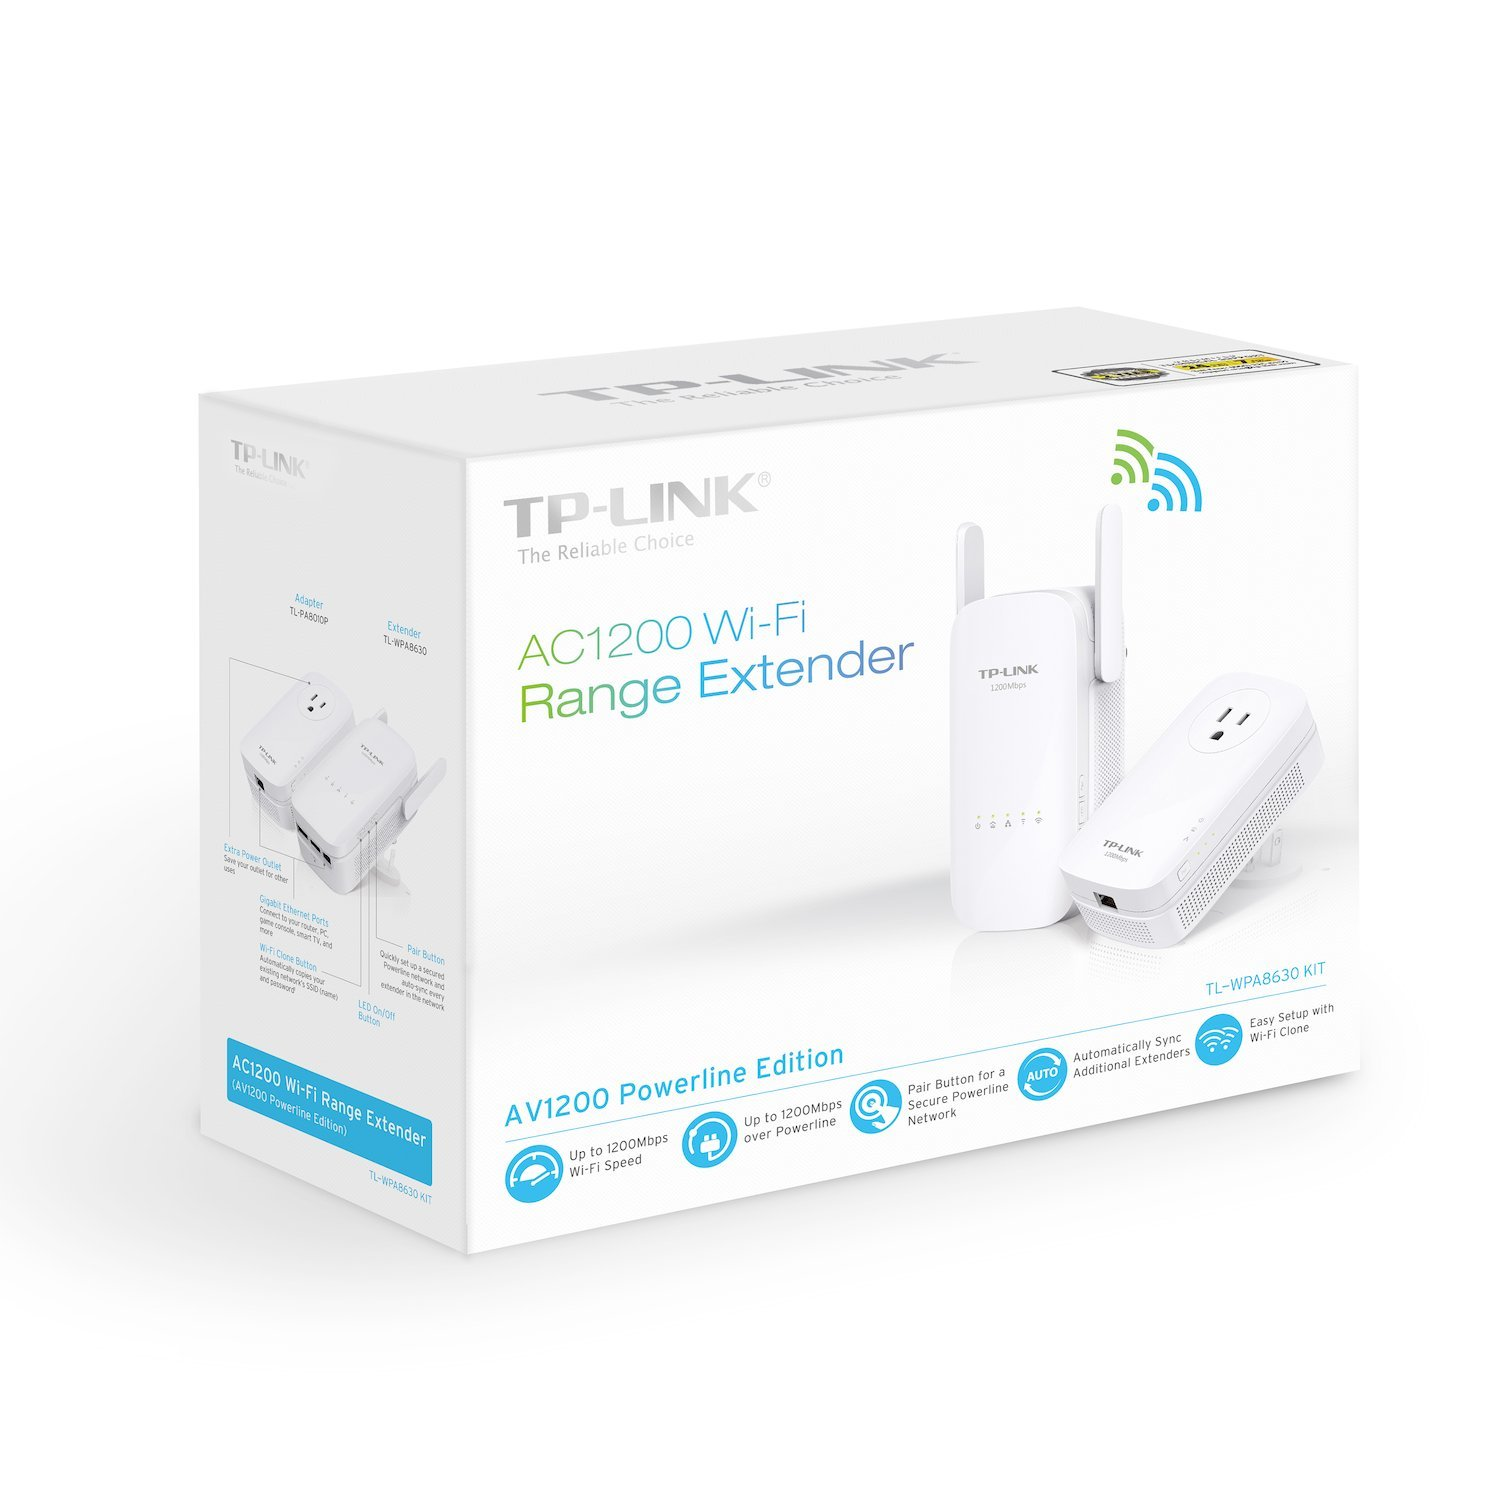 TP-Link AC1200 Wi-Fi Range Extender, AV1200 Powerline Edition, Extra Outlet (TL-WPA8630 KIT) by TP-Link (Image #4)